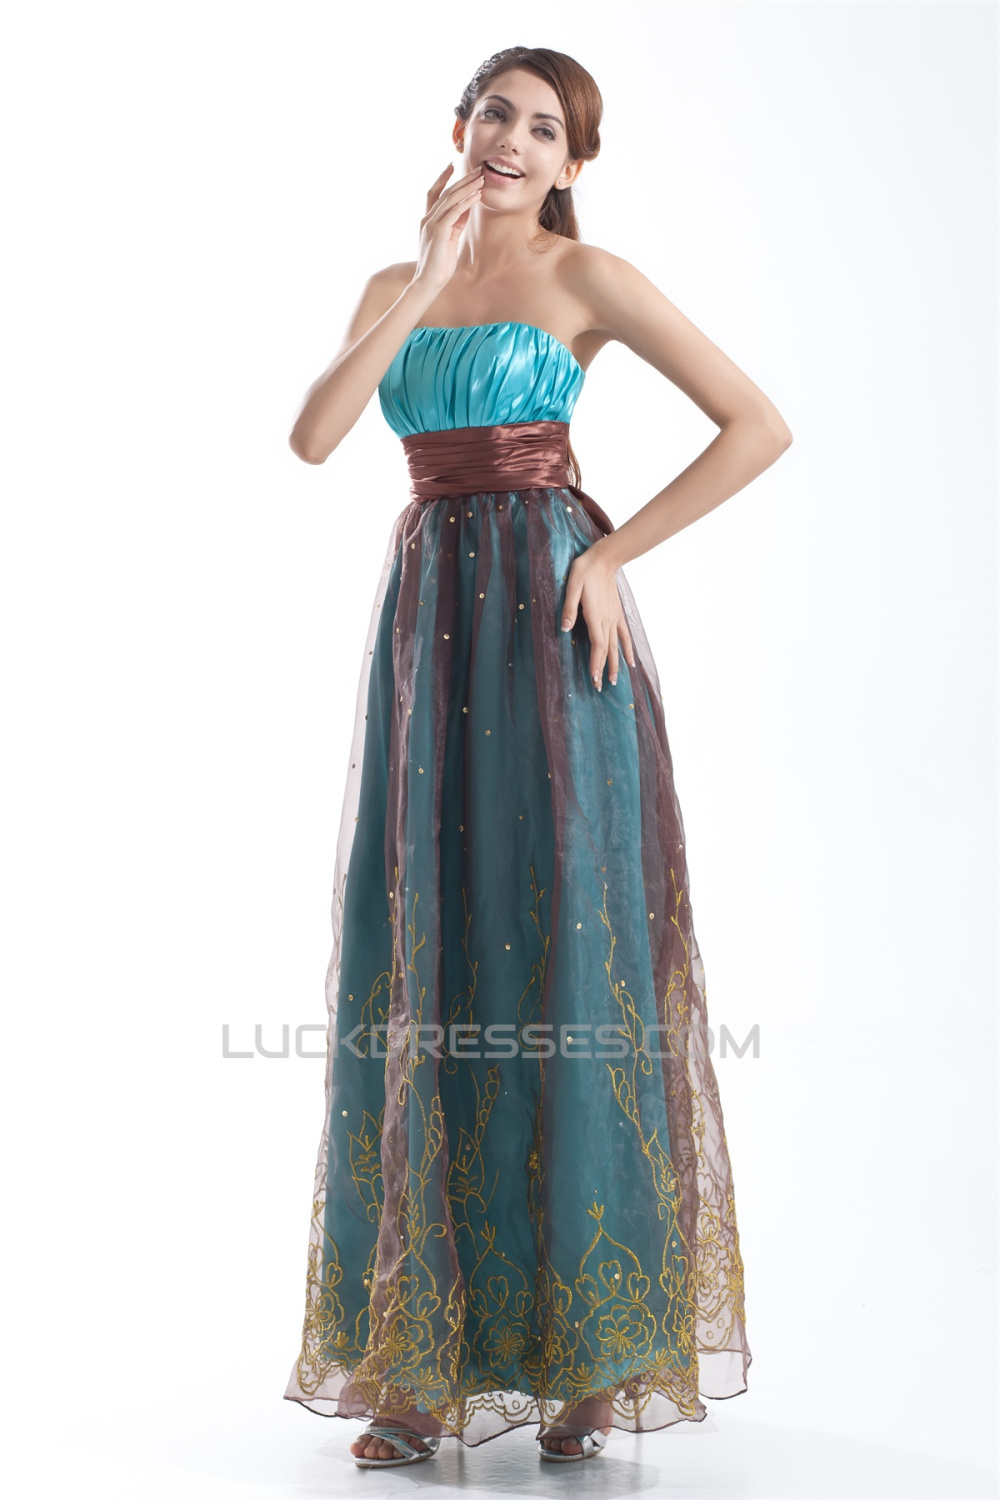 Organza Silk Like Satin Pleats Strapless Prom Formal